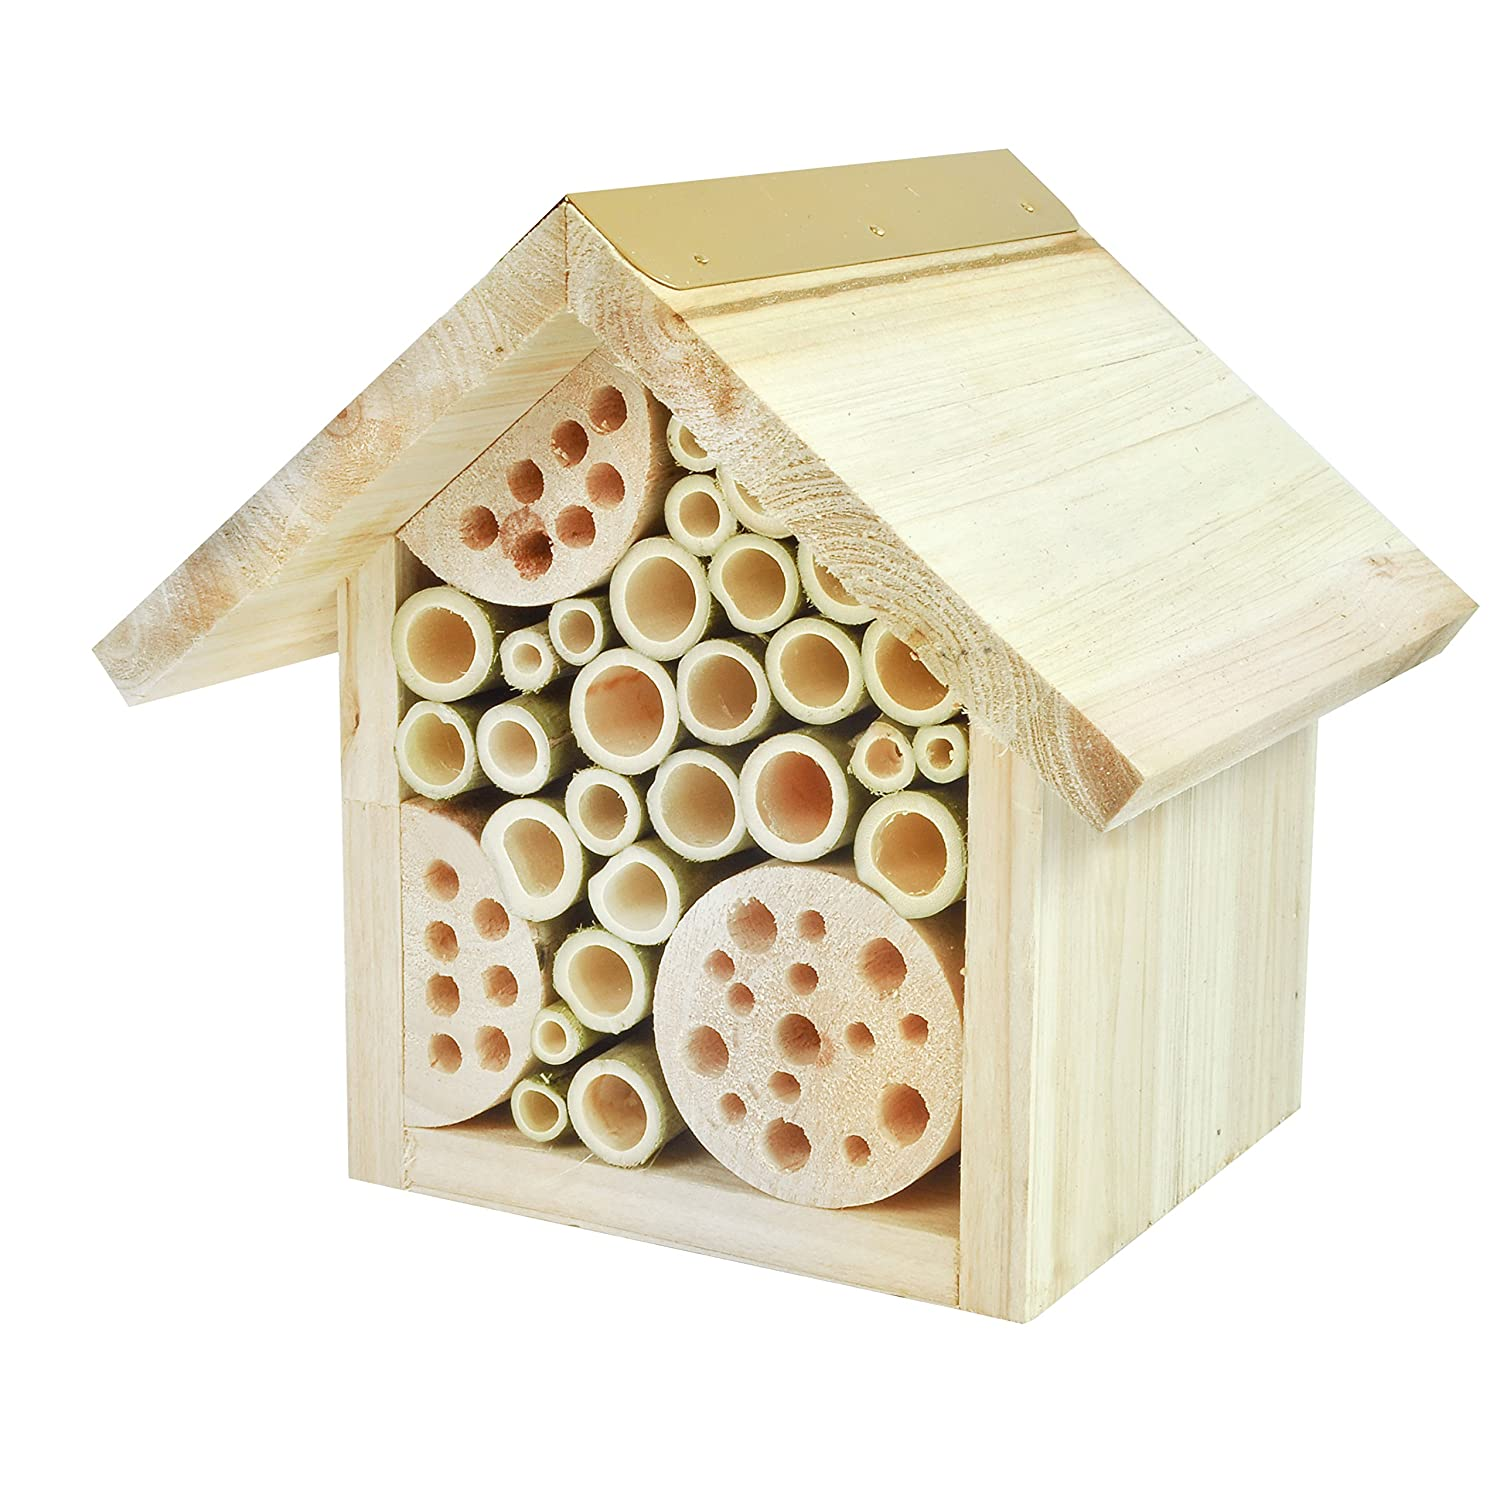 Gardirect Natural Wooden Bee Hotel Insect House